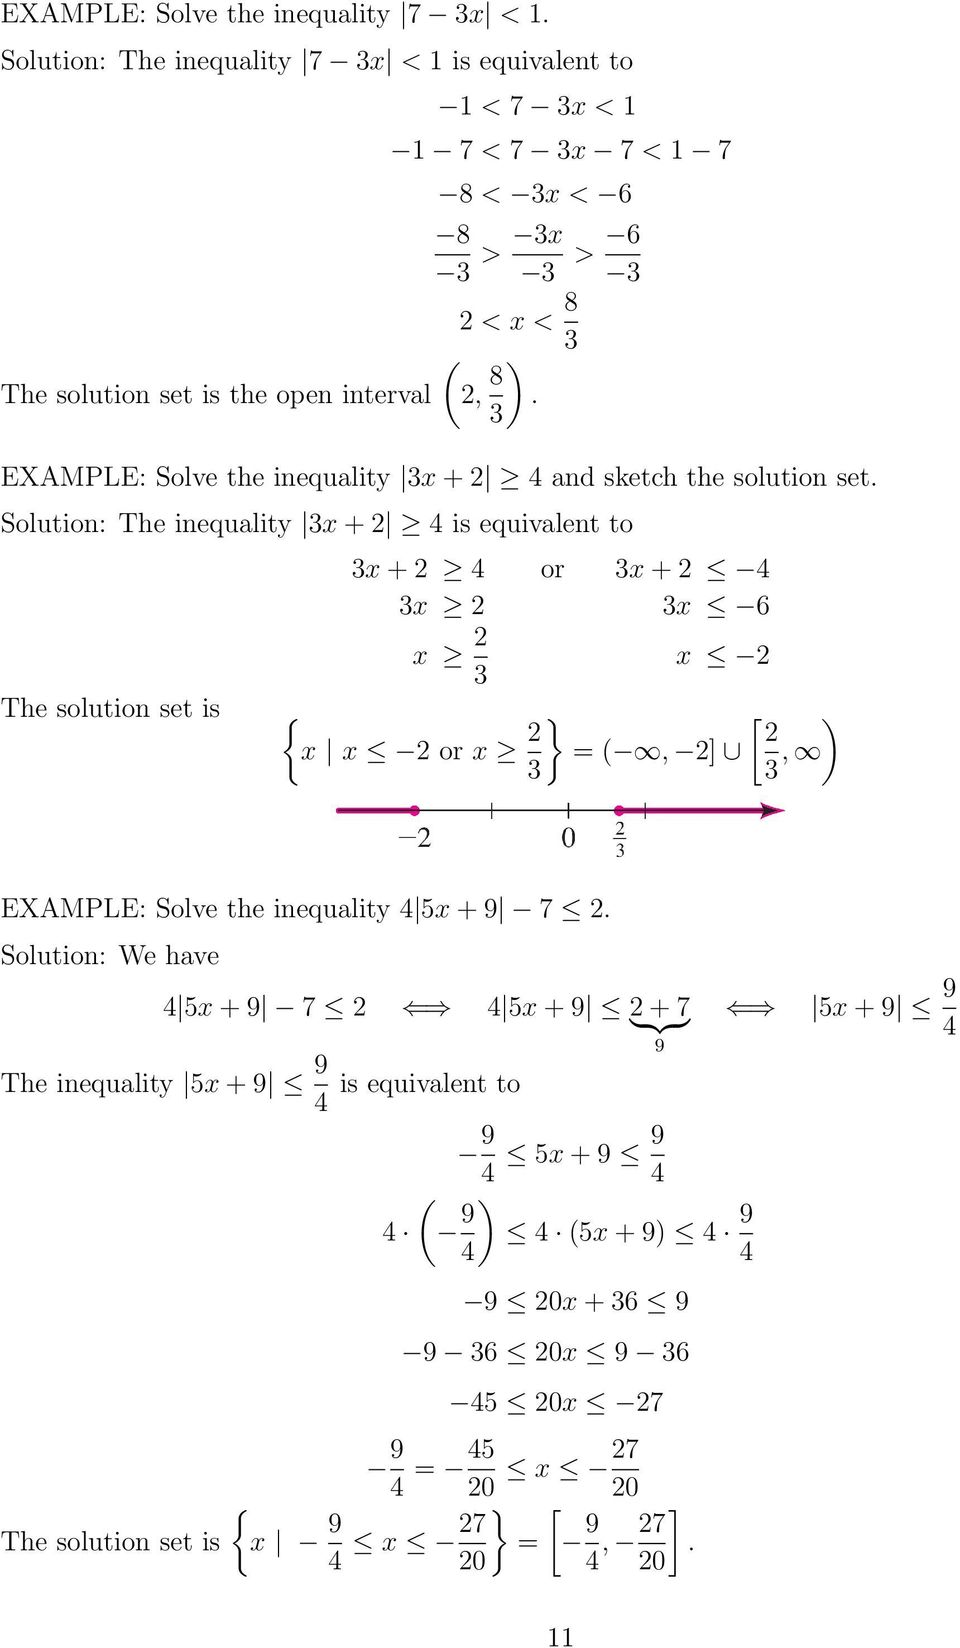 EXAMPLE: Solve the inequality x+ 4 and sketch the solution set.